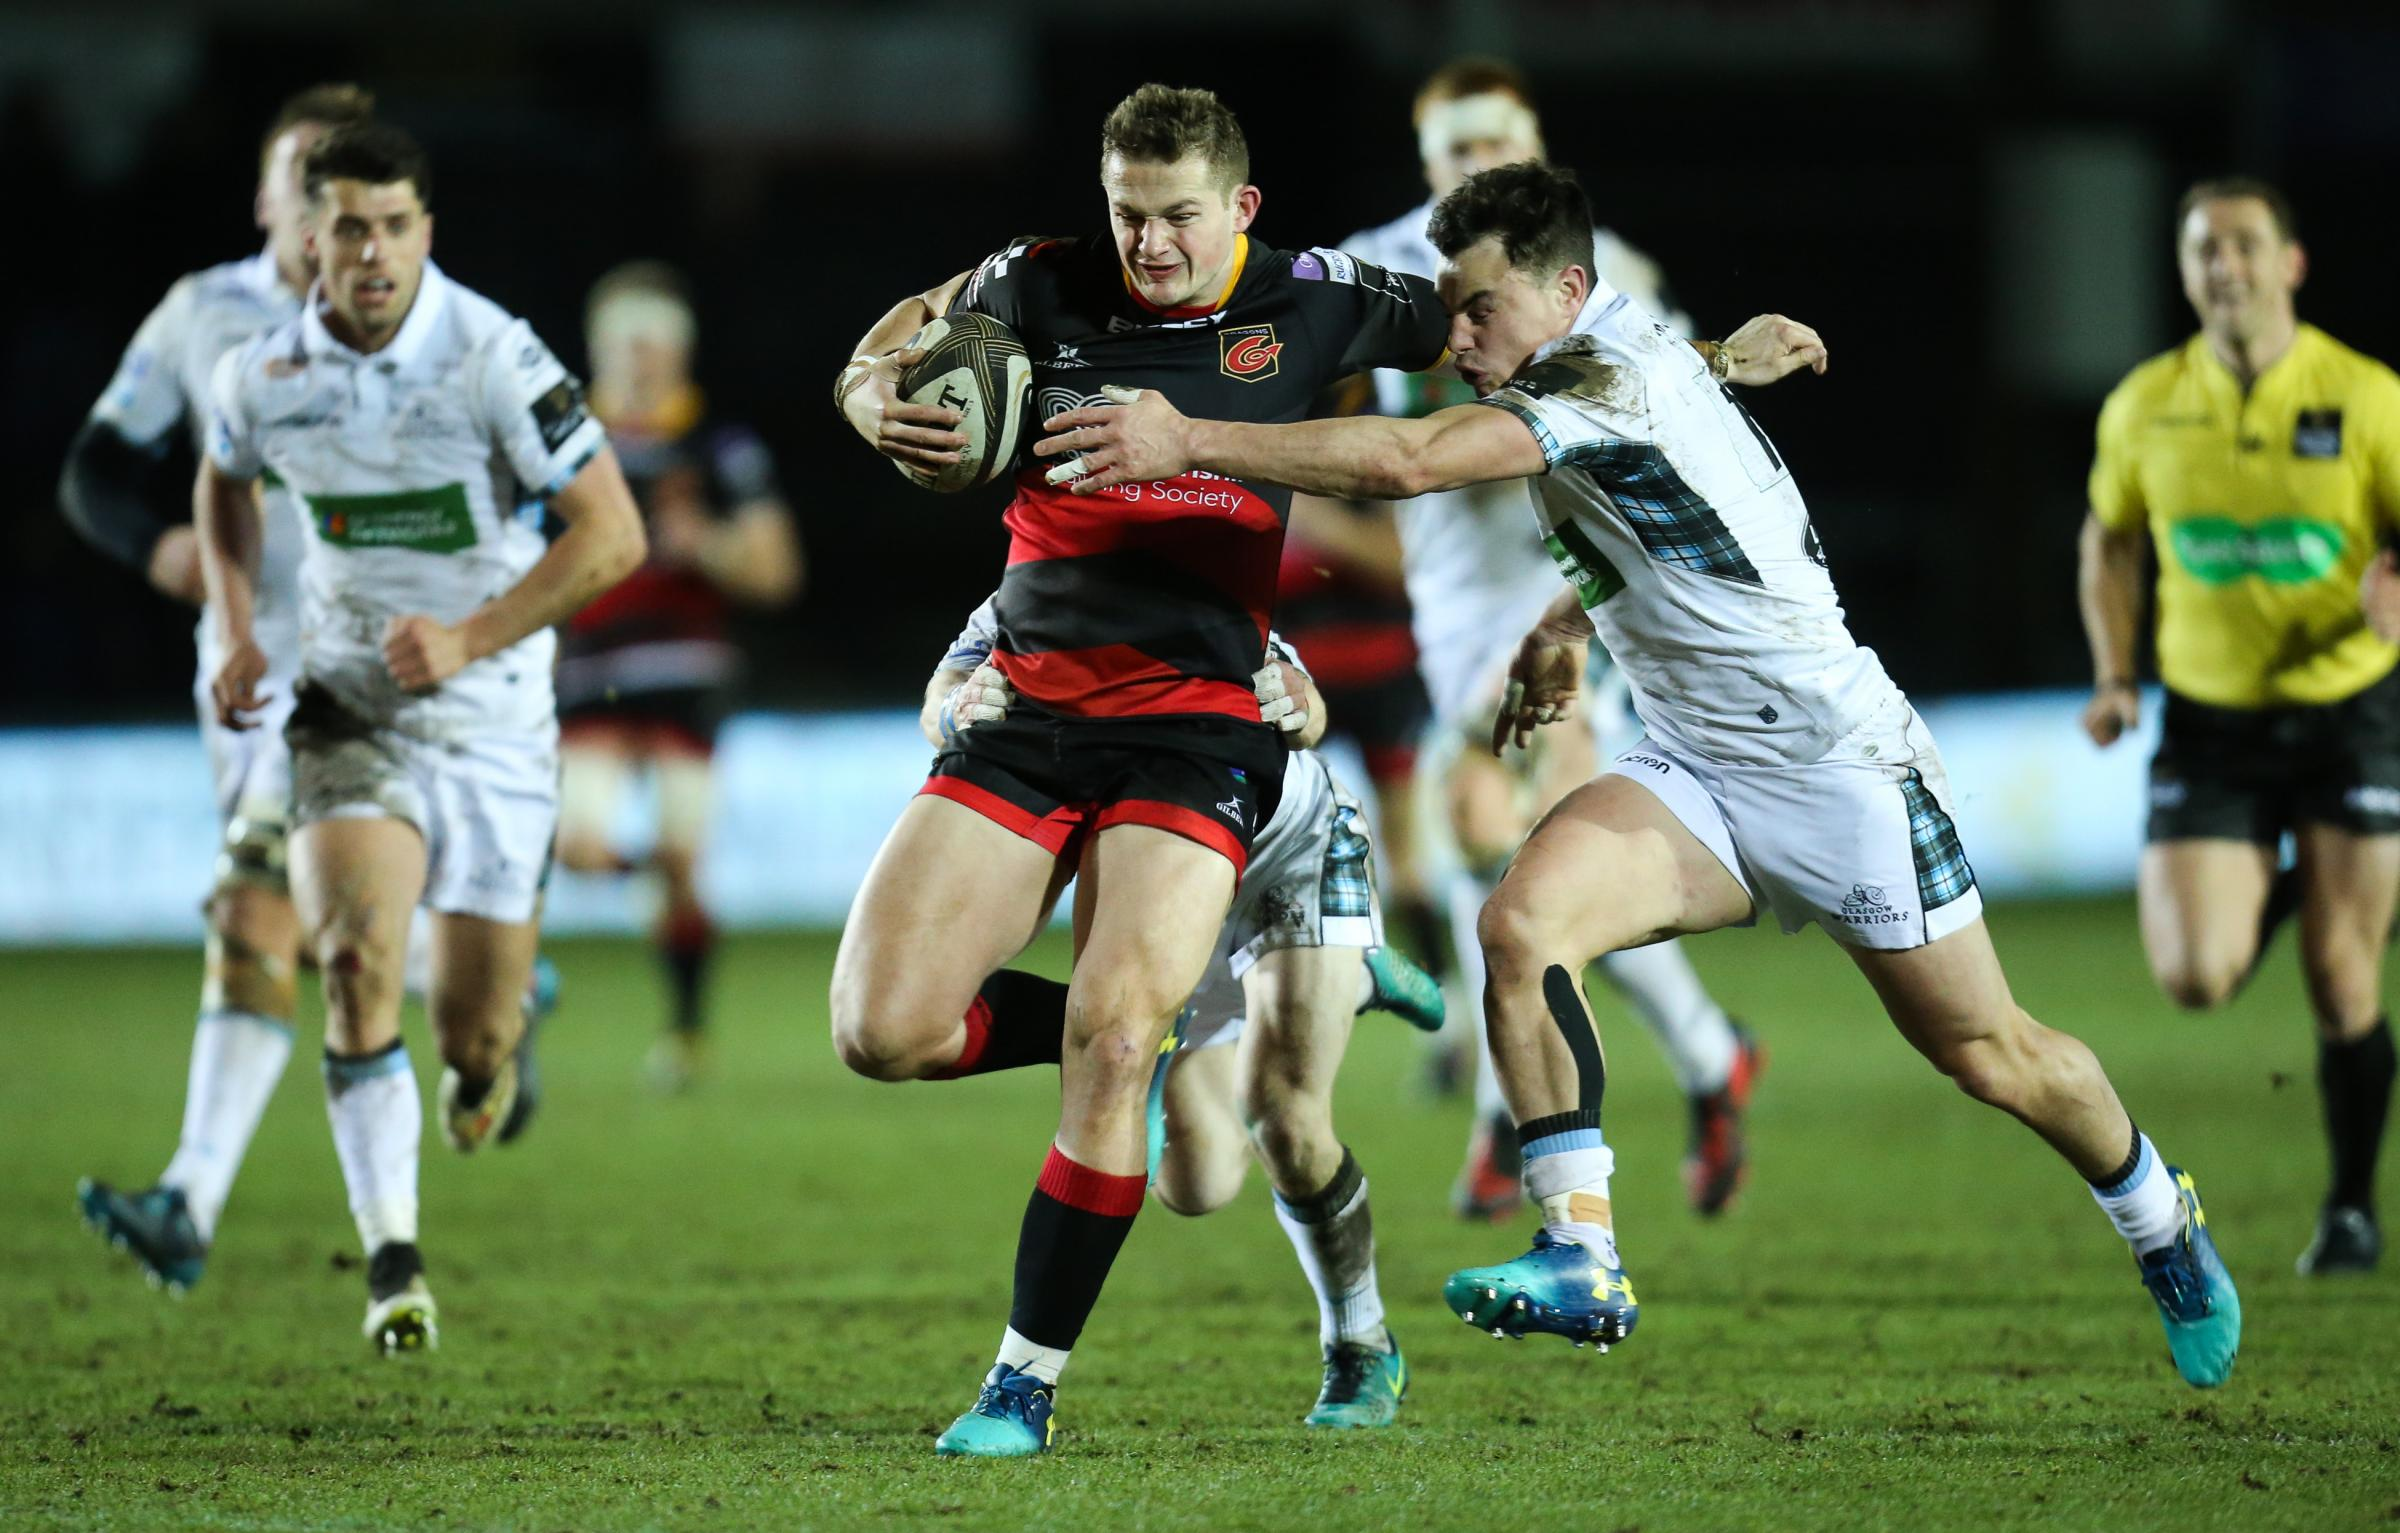 Dragons 15 Glasgow 15: Spoils shared at Rodney Parade